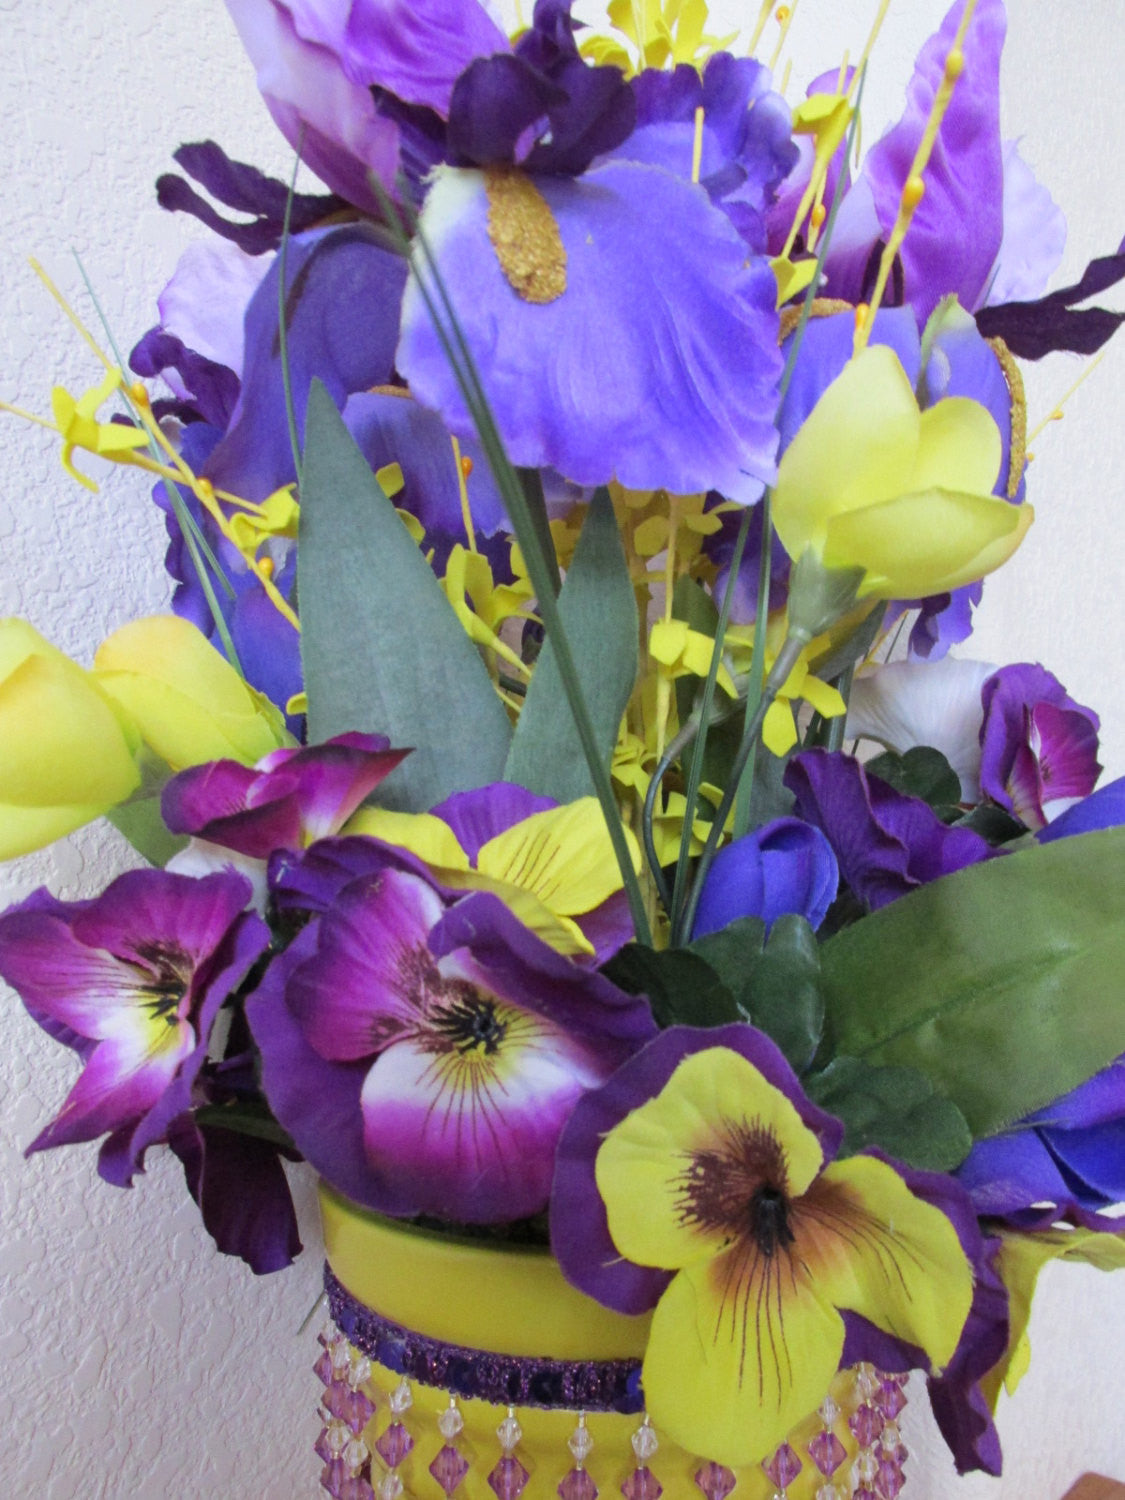 Spring Floral Centerpiece in Purple Iris, Yellow Forsythia, and Mixed Pansies and Tulips - Odyssey Creations